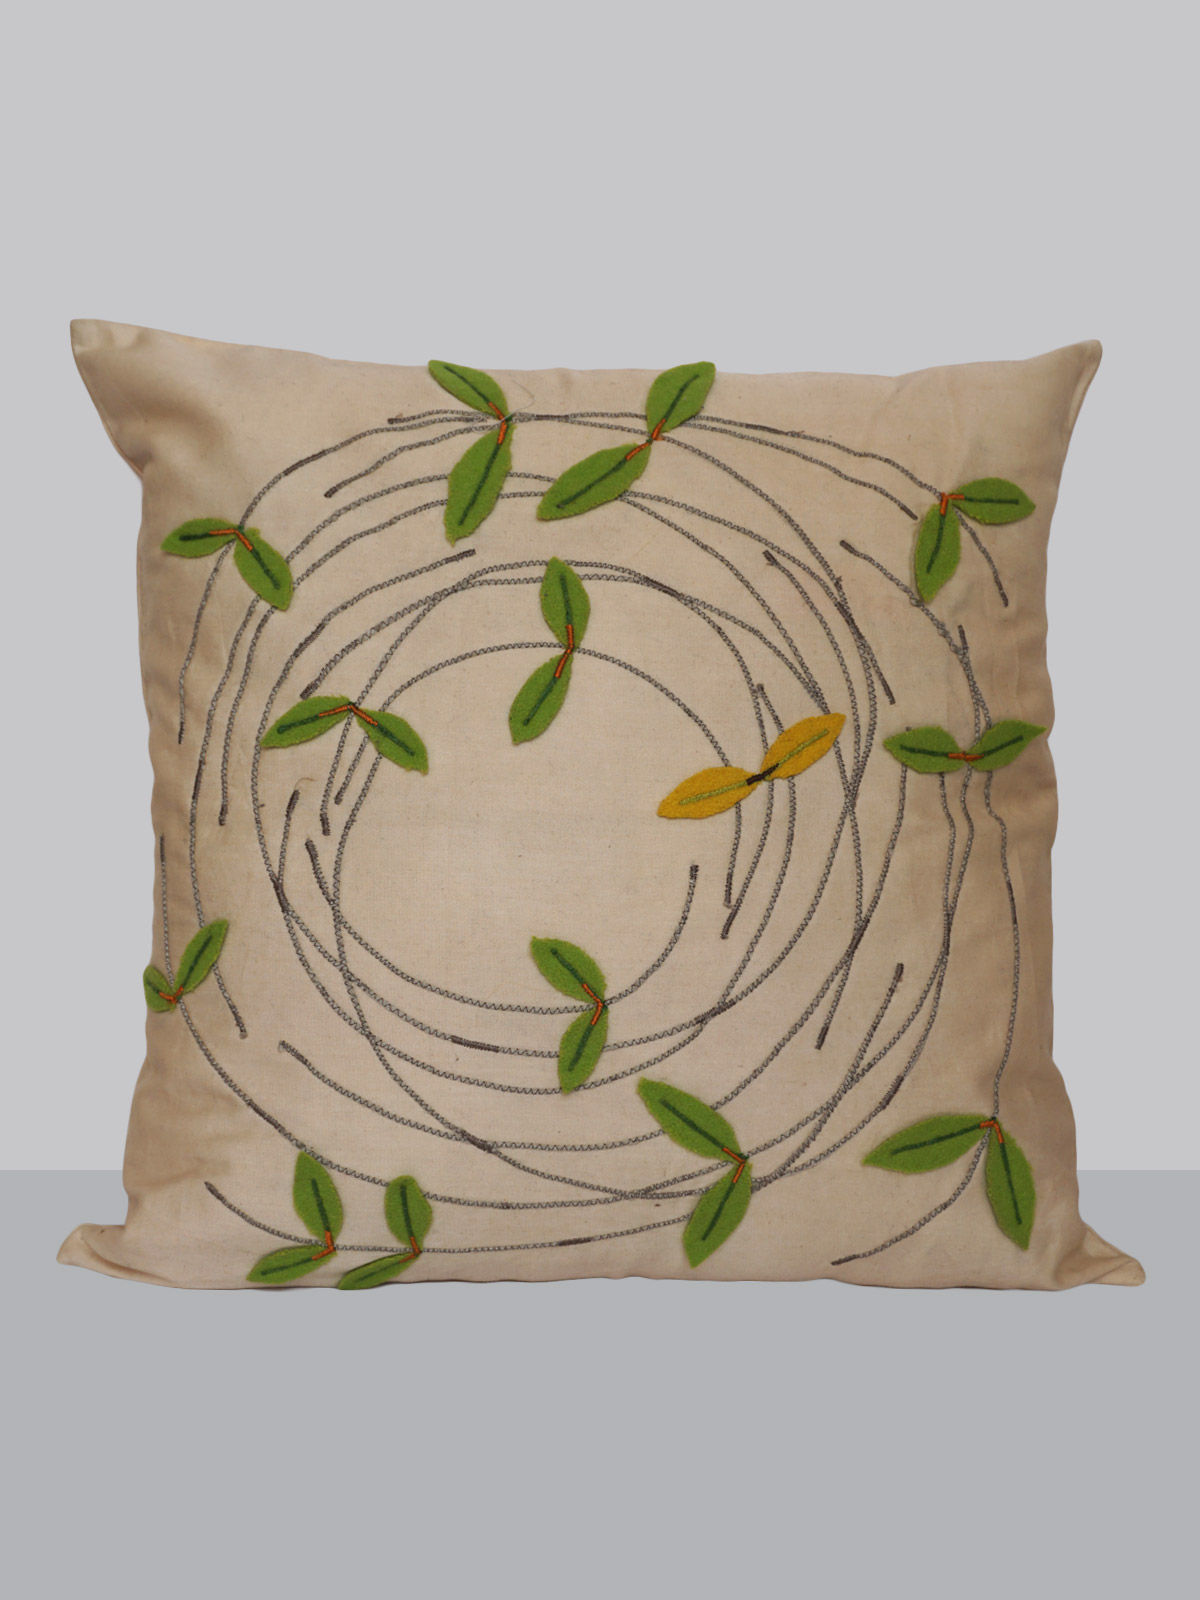 Off-white felt patchwork emroidered circuler leaf pattern cotton cushion cover